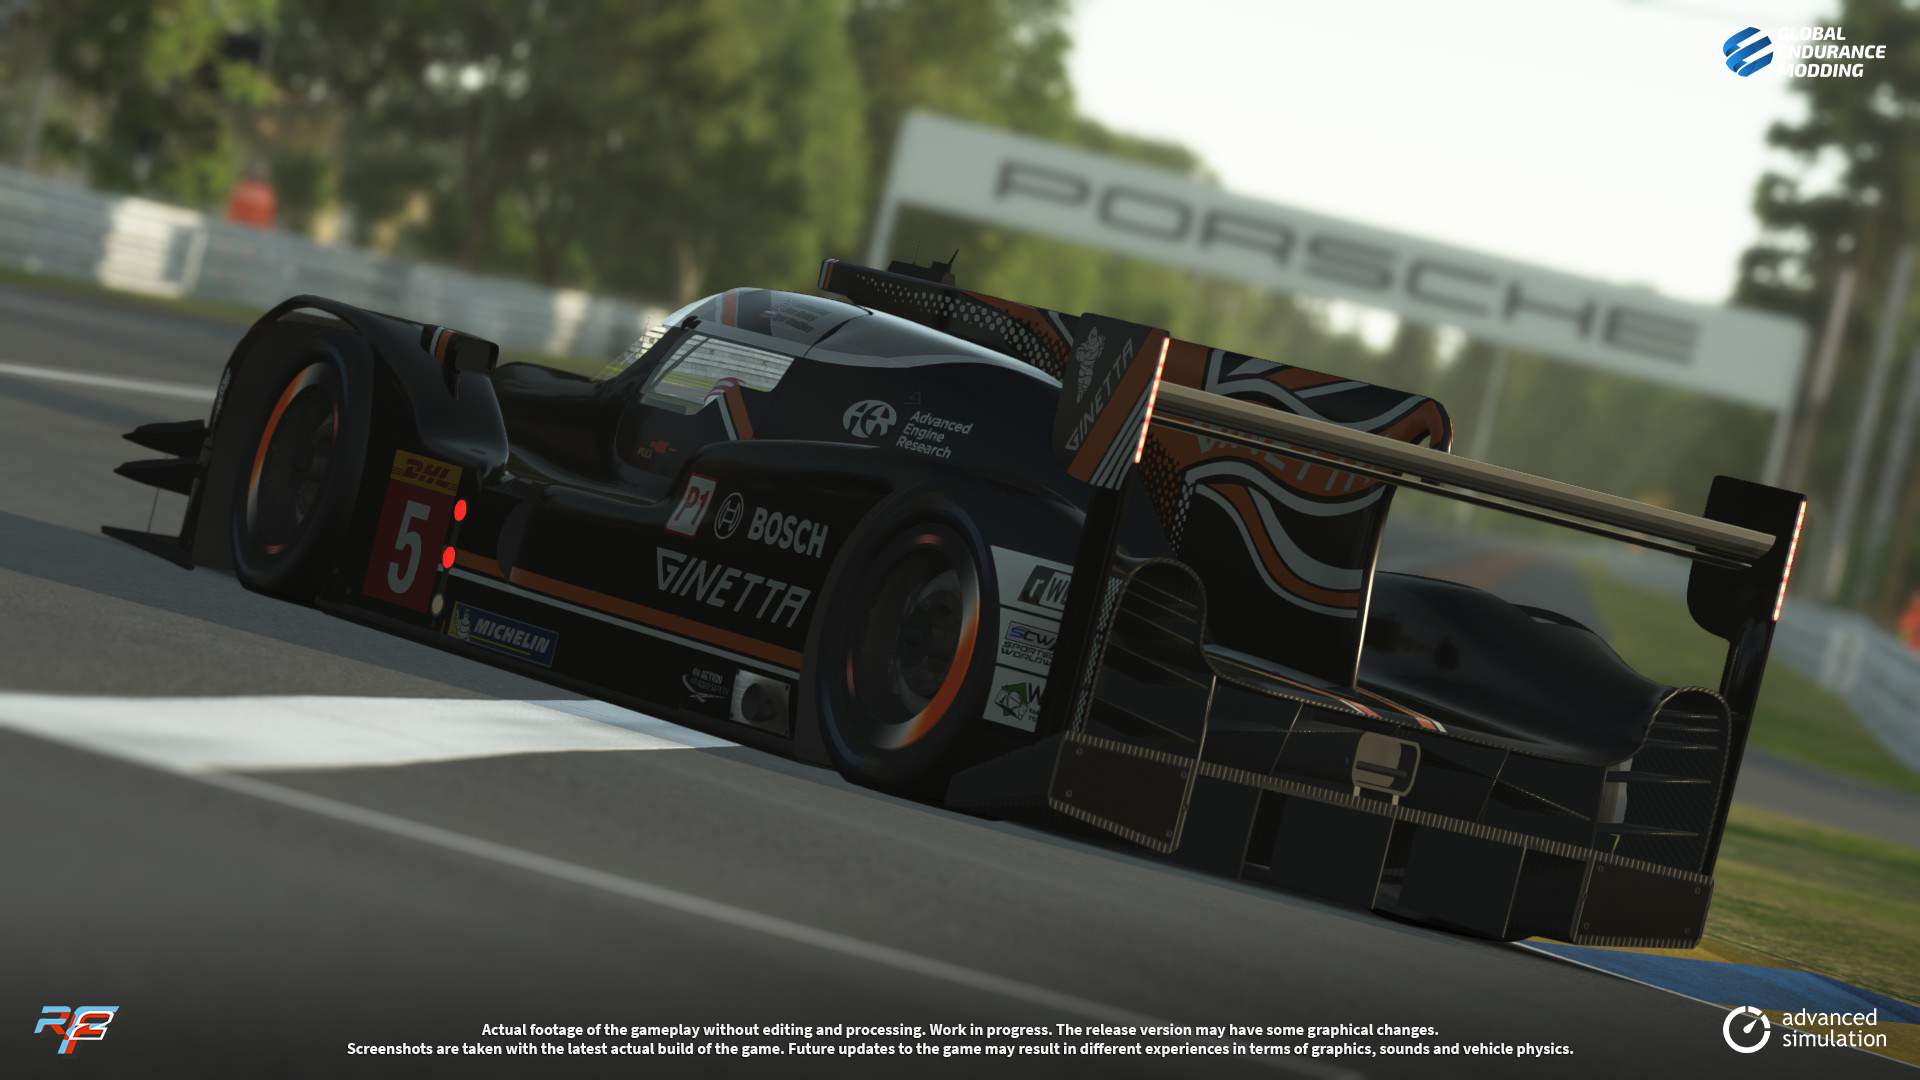 screen-010 Ginetta G60-LT-P1 LMP1 for rFactor 2 – More Previews